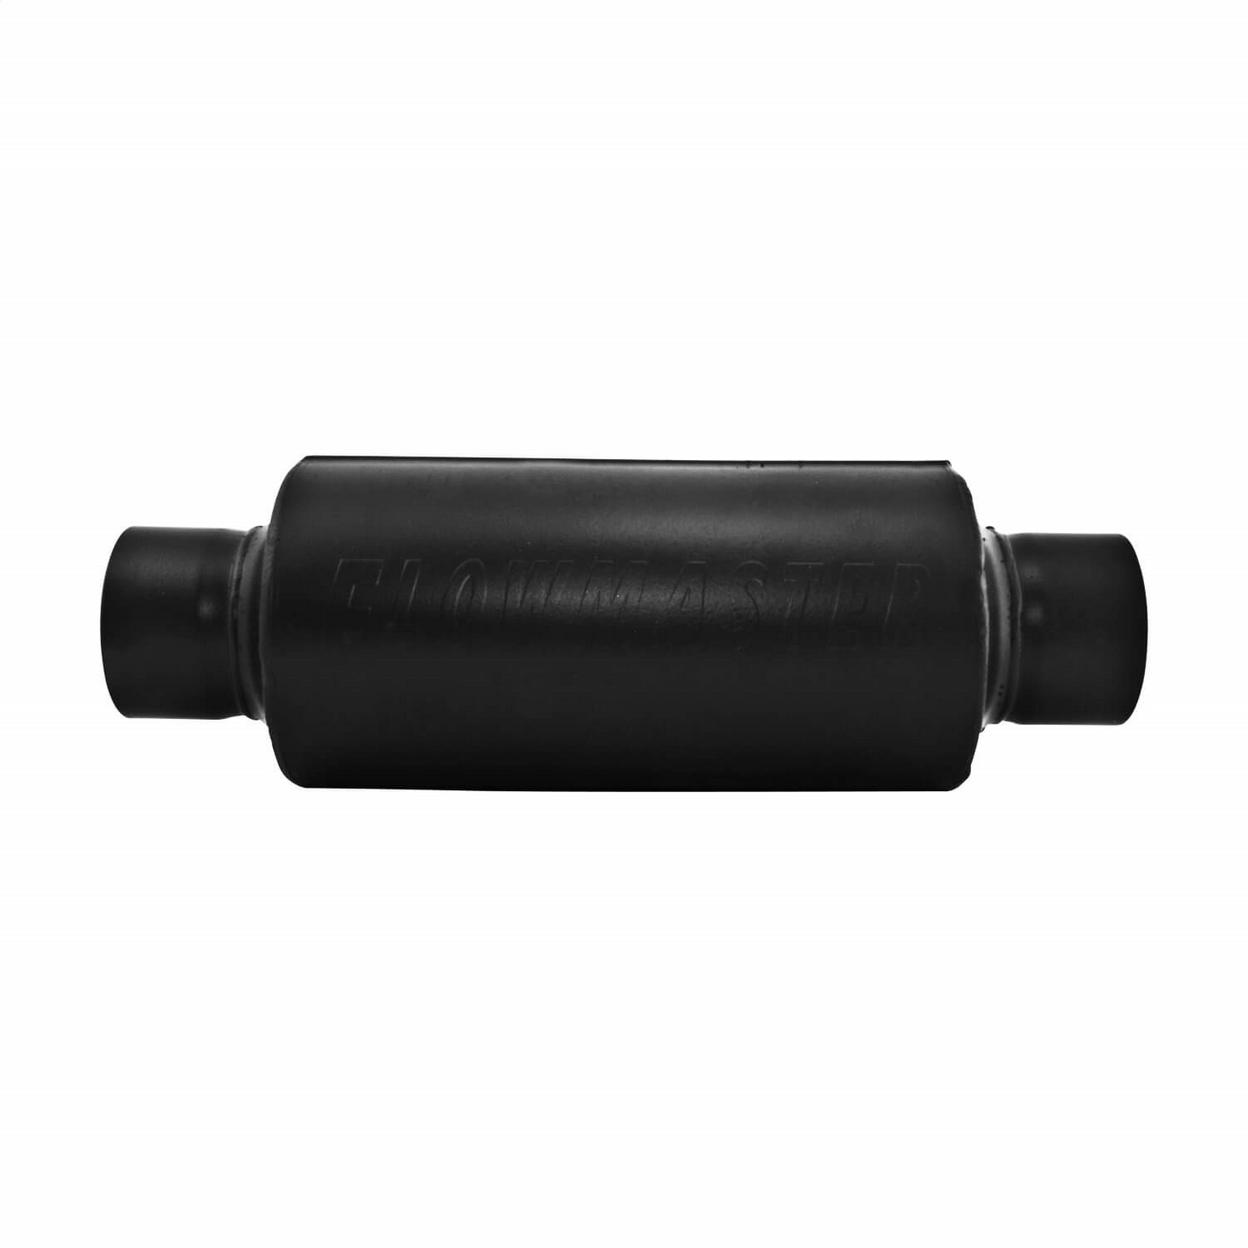 Pro Series Shorty Muffler - 3.00 Center In / 3.00 Center Out - Moderate Sound